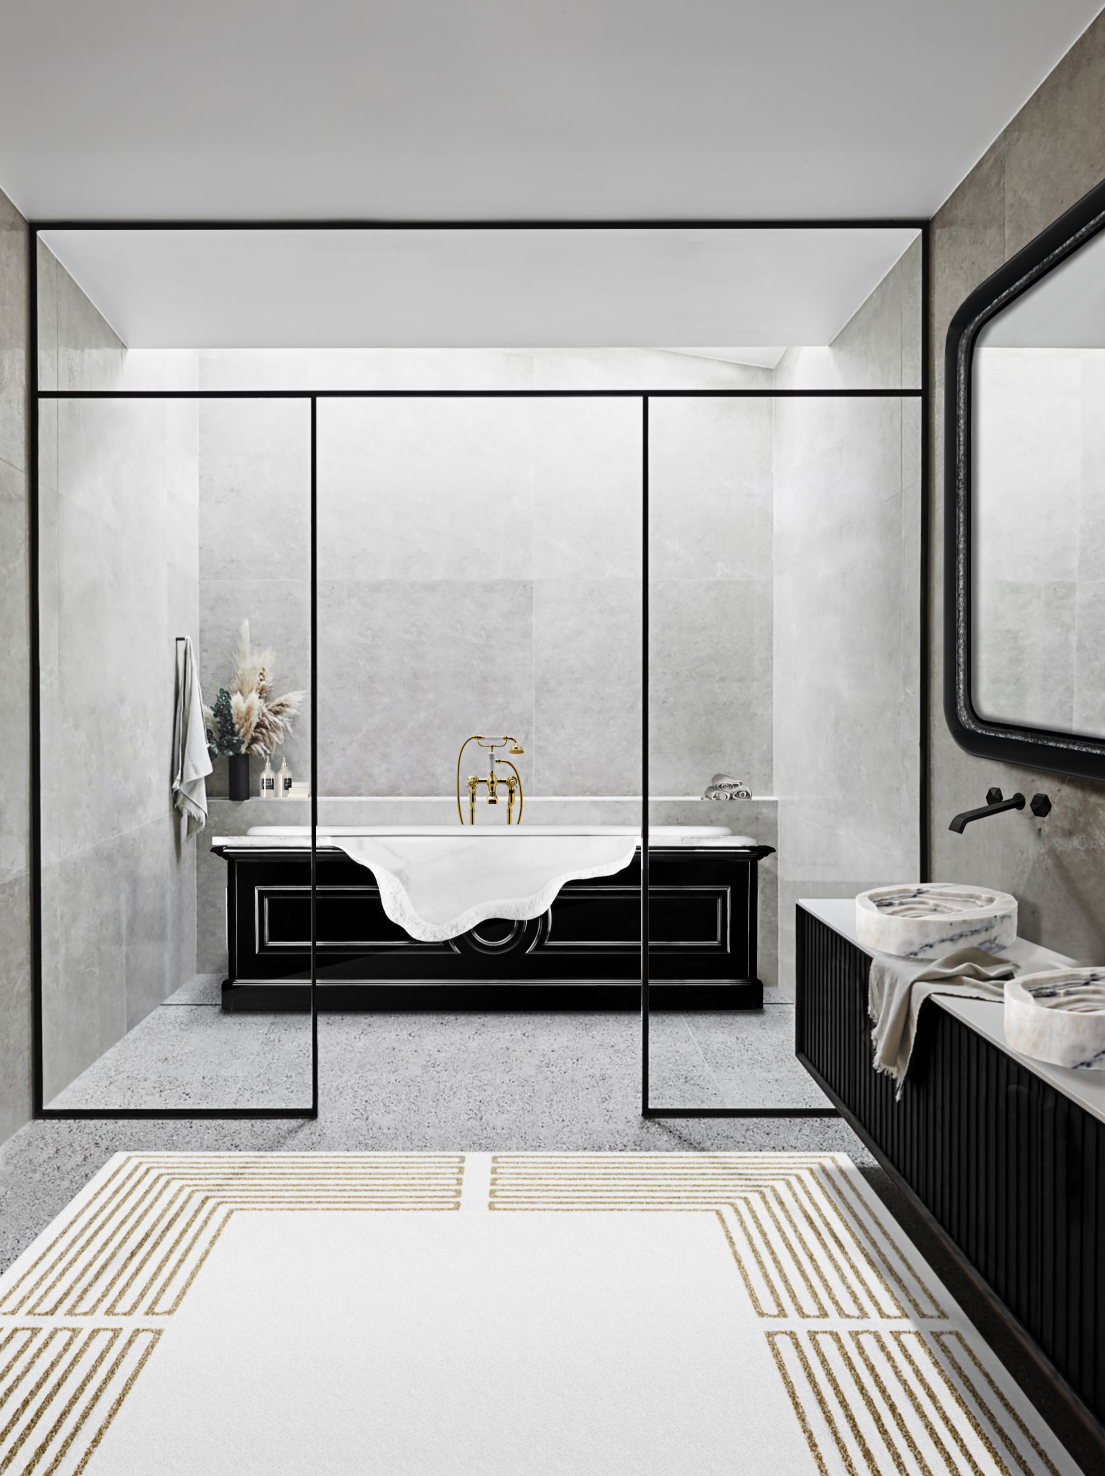 2020 Spring Interior Design Trends: Colors, Textures and Patterns 3 2020 spring 2020 Spring Interior Design Trends: Colors, Textures and Patterns MV petra bathtub midnight rug